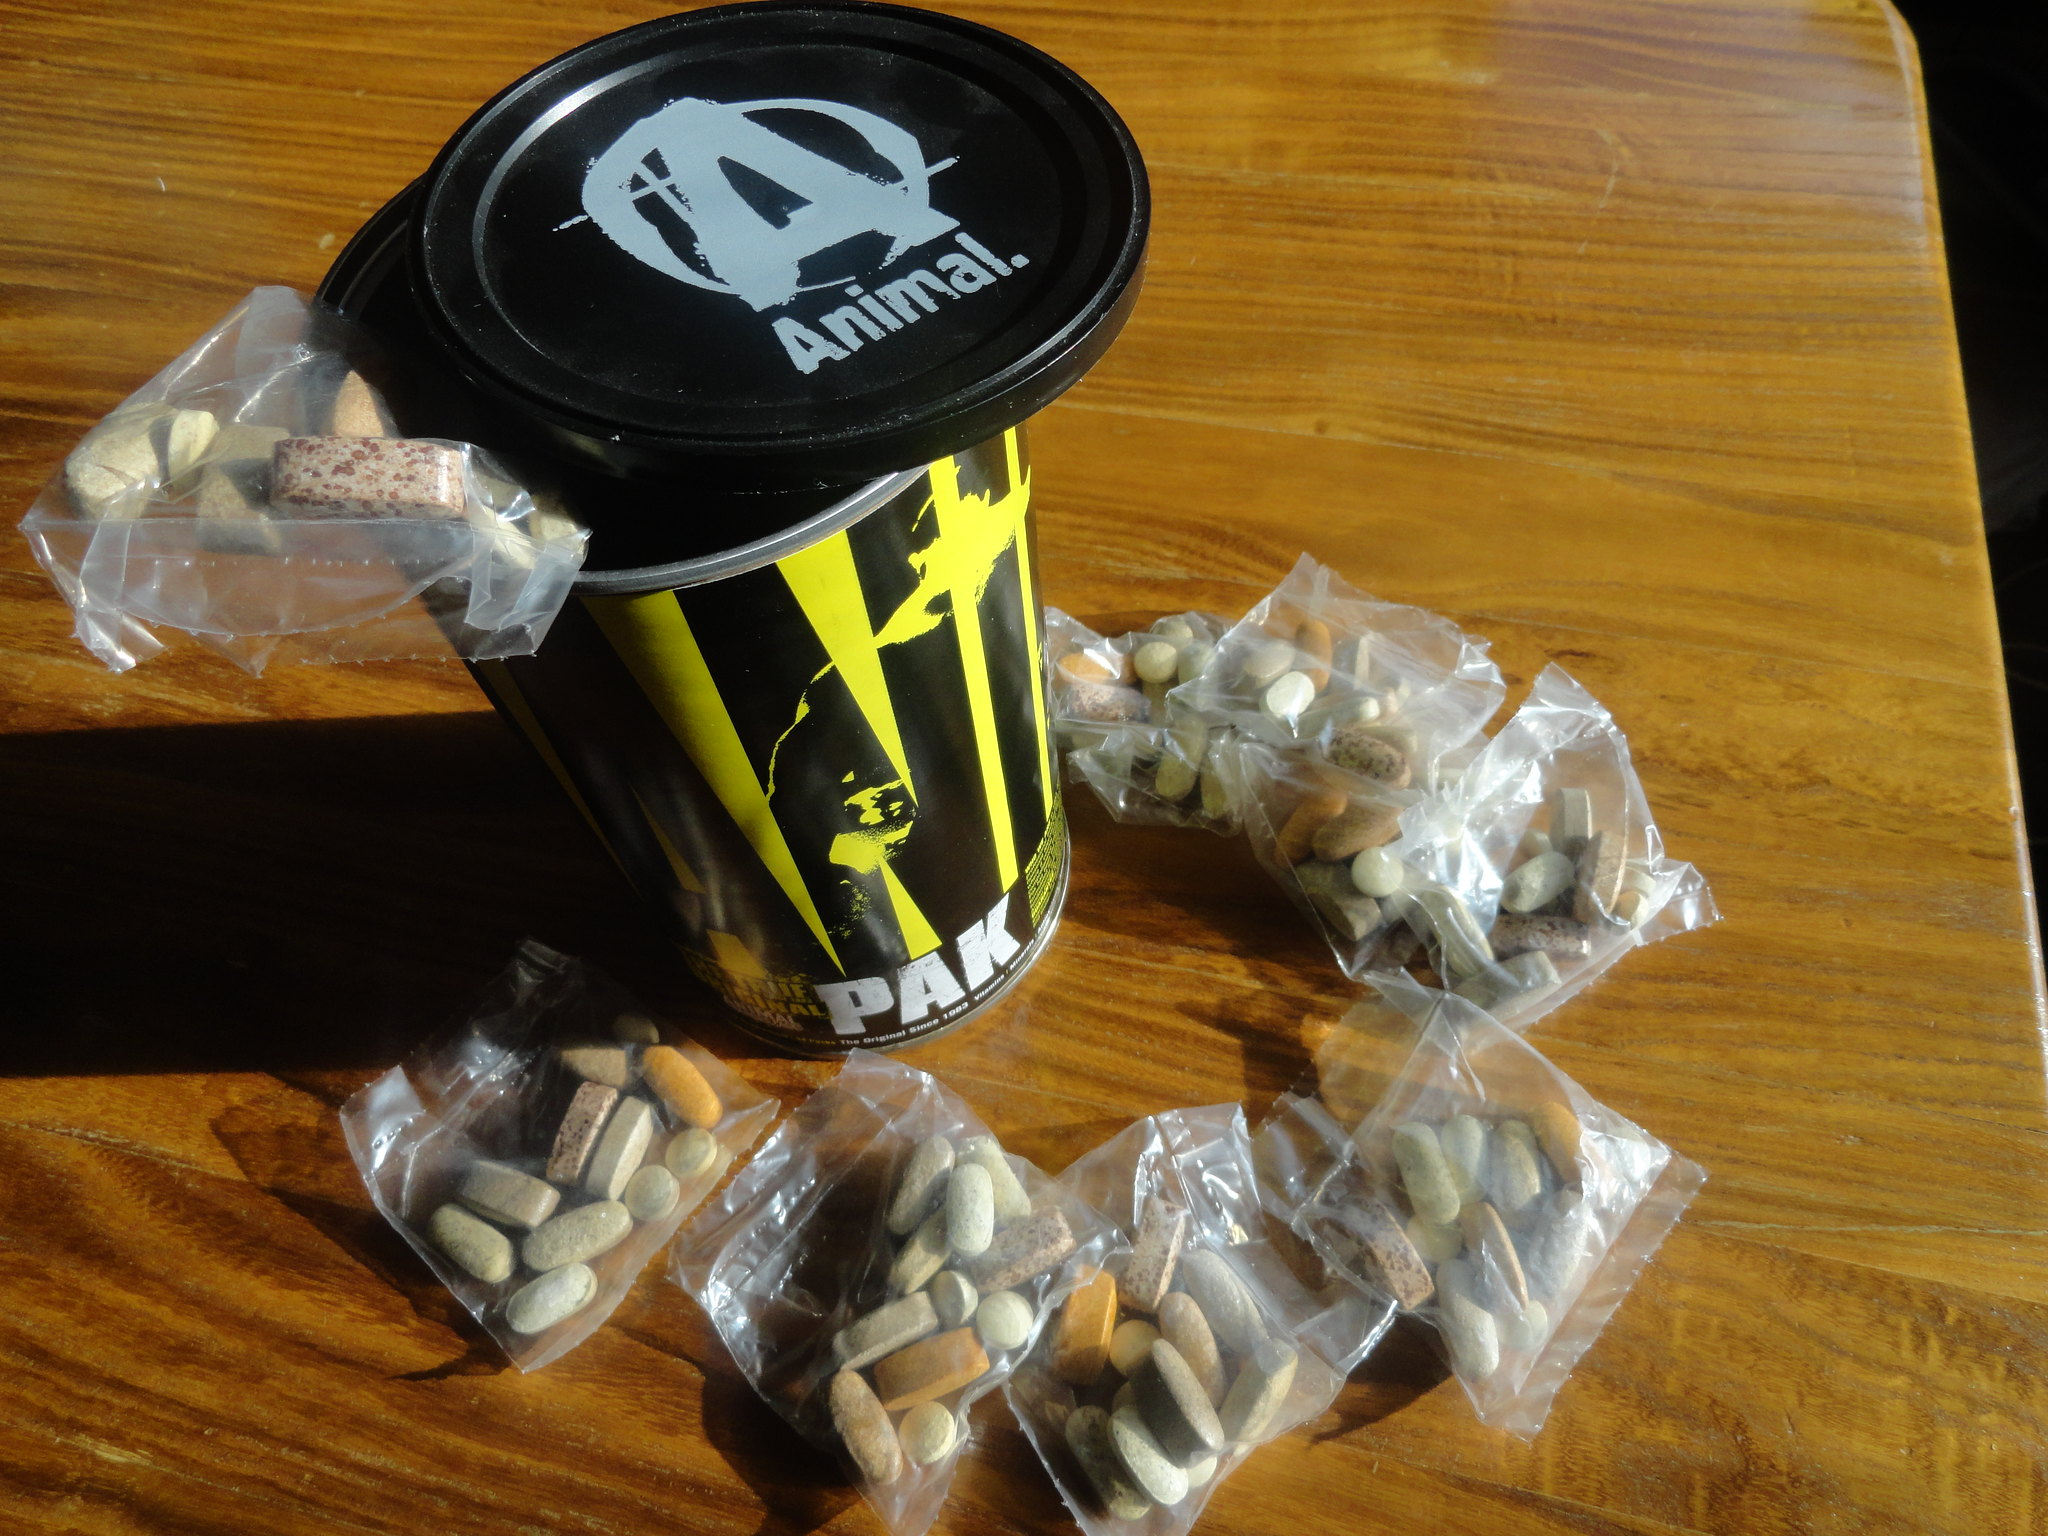 Animal Pak Bodybuilding and Fitness supplement(3) | Flickr ...